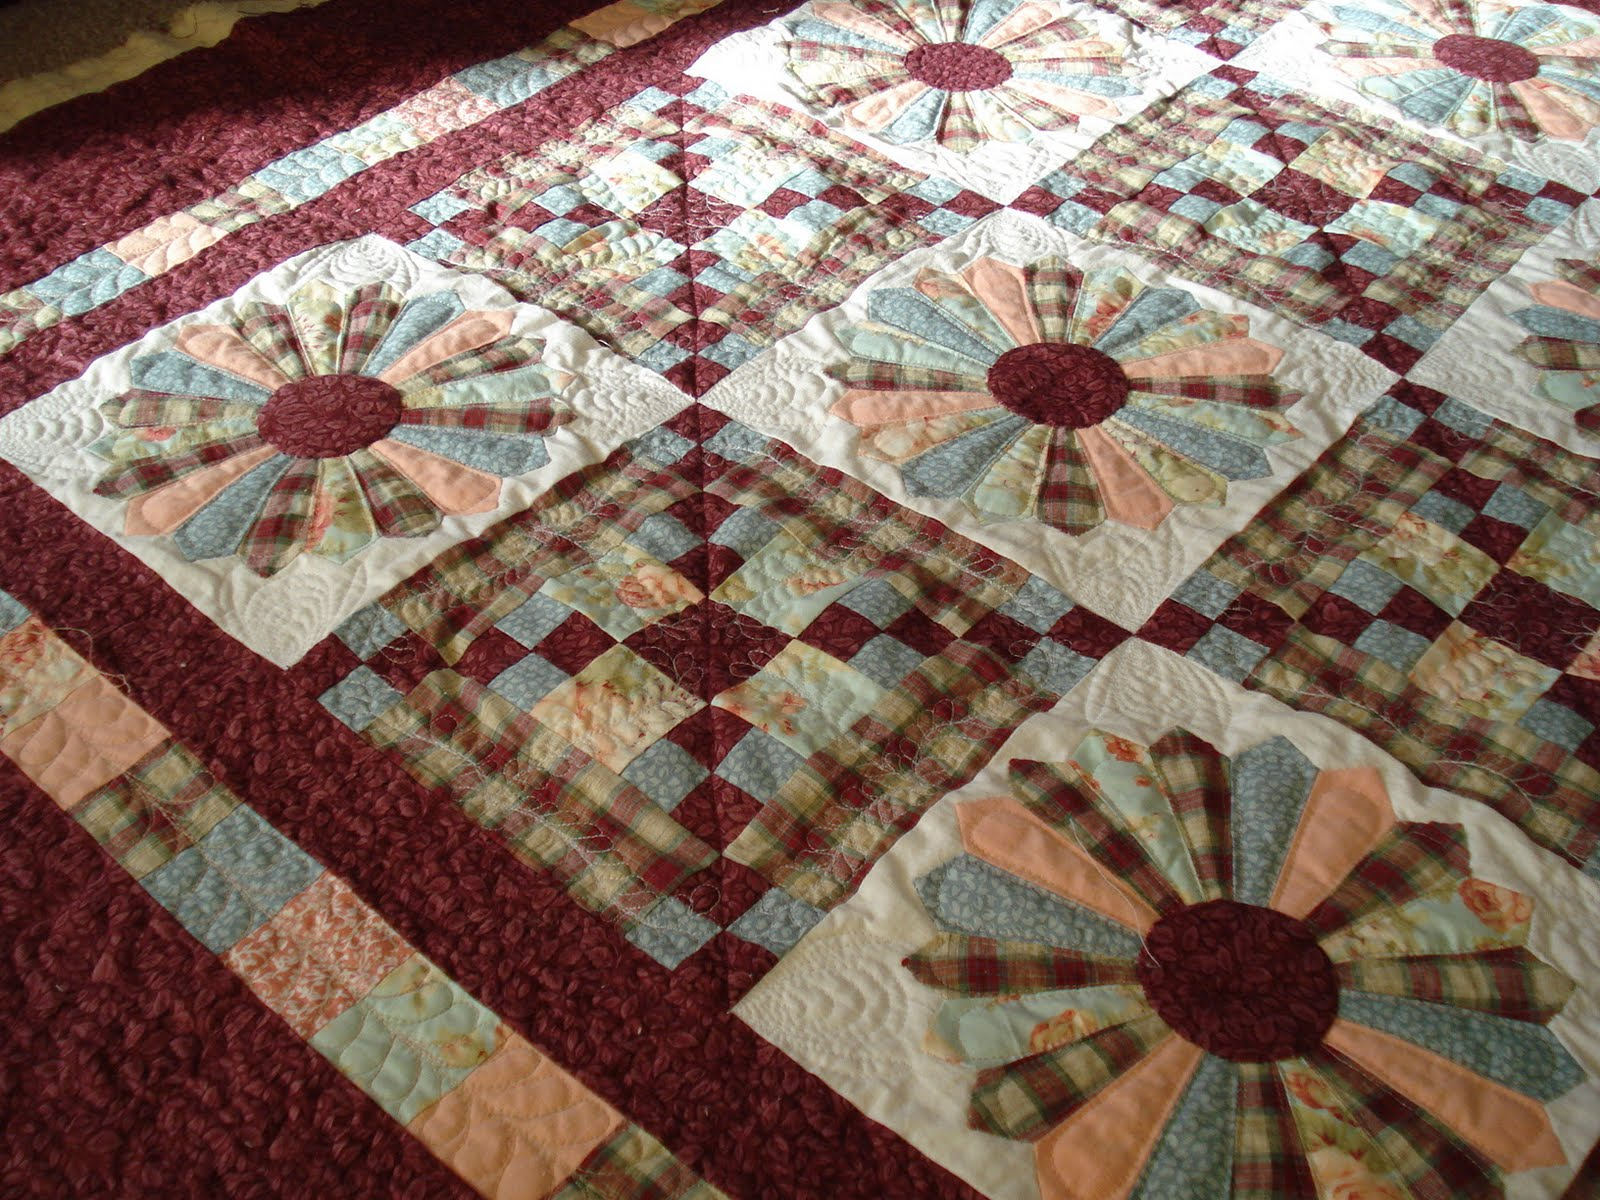 The Nifty Stitcher Dresden Plate Lap Quilt